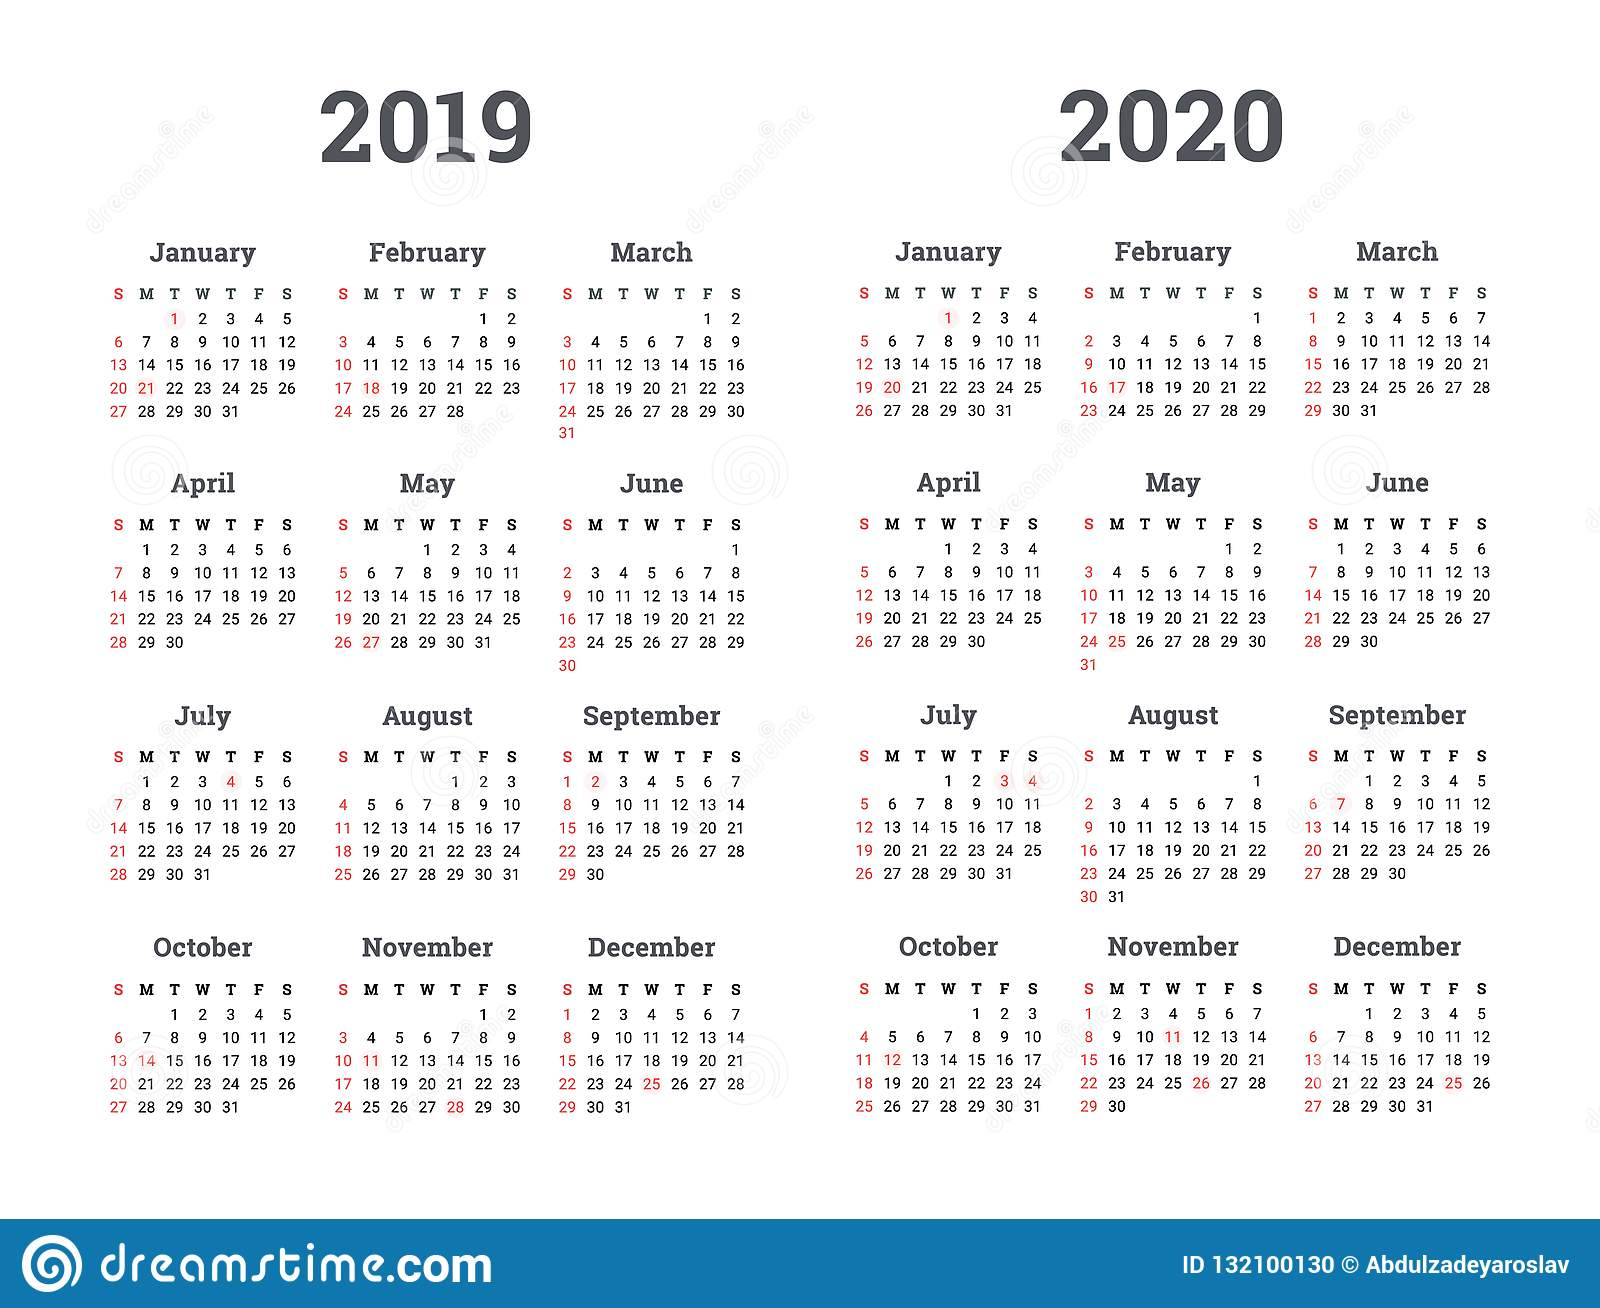 Календарь 2019 2020 Год - Иллюстрация Вектора Старты Недели На intended for U Of R Calendar 2019-2020